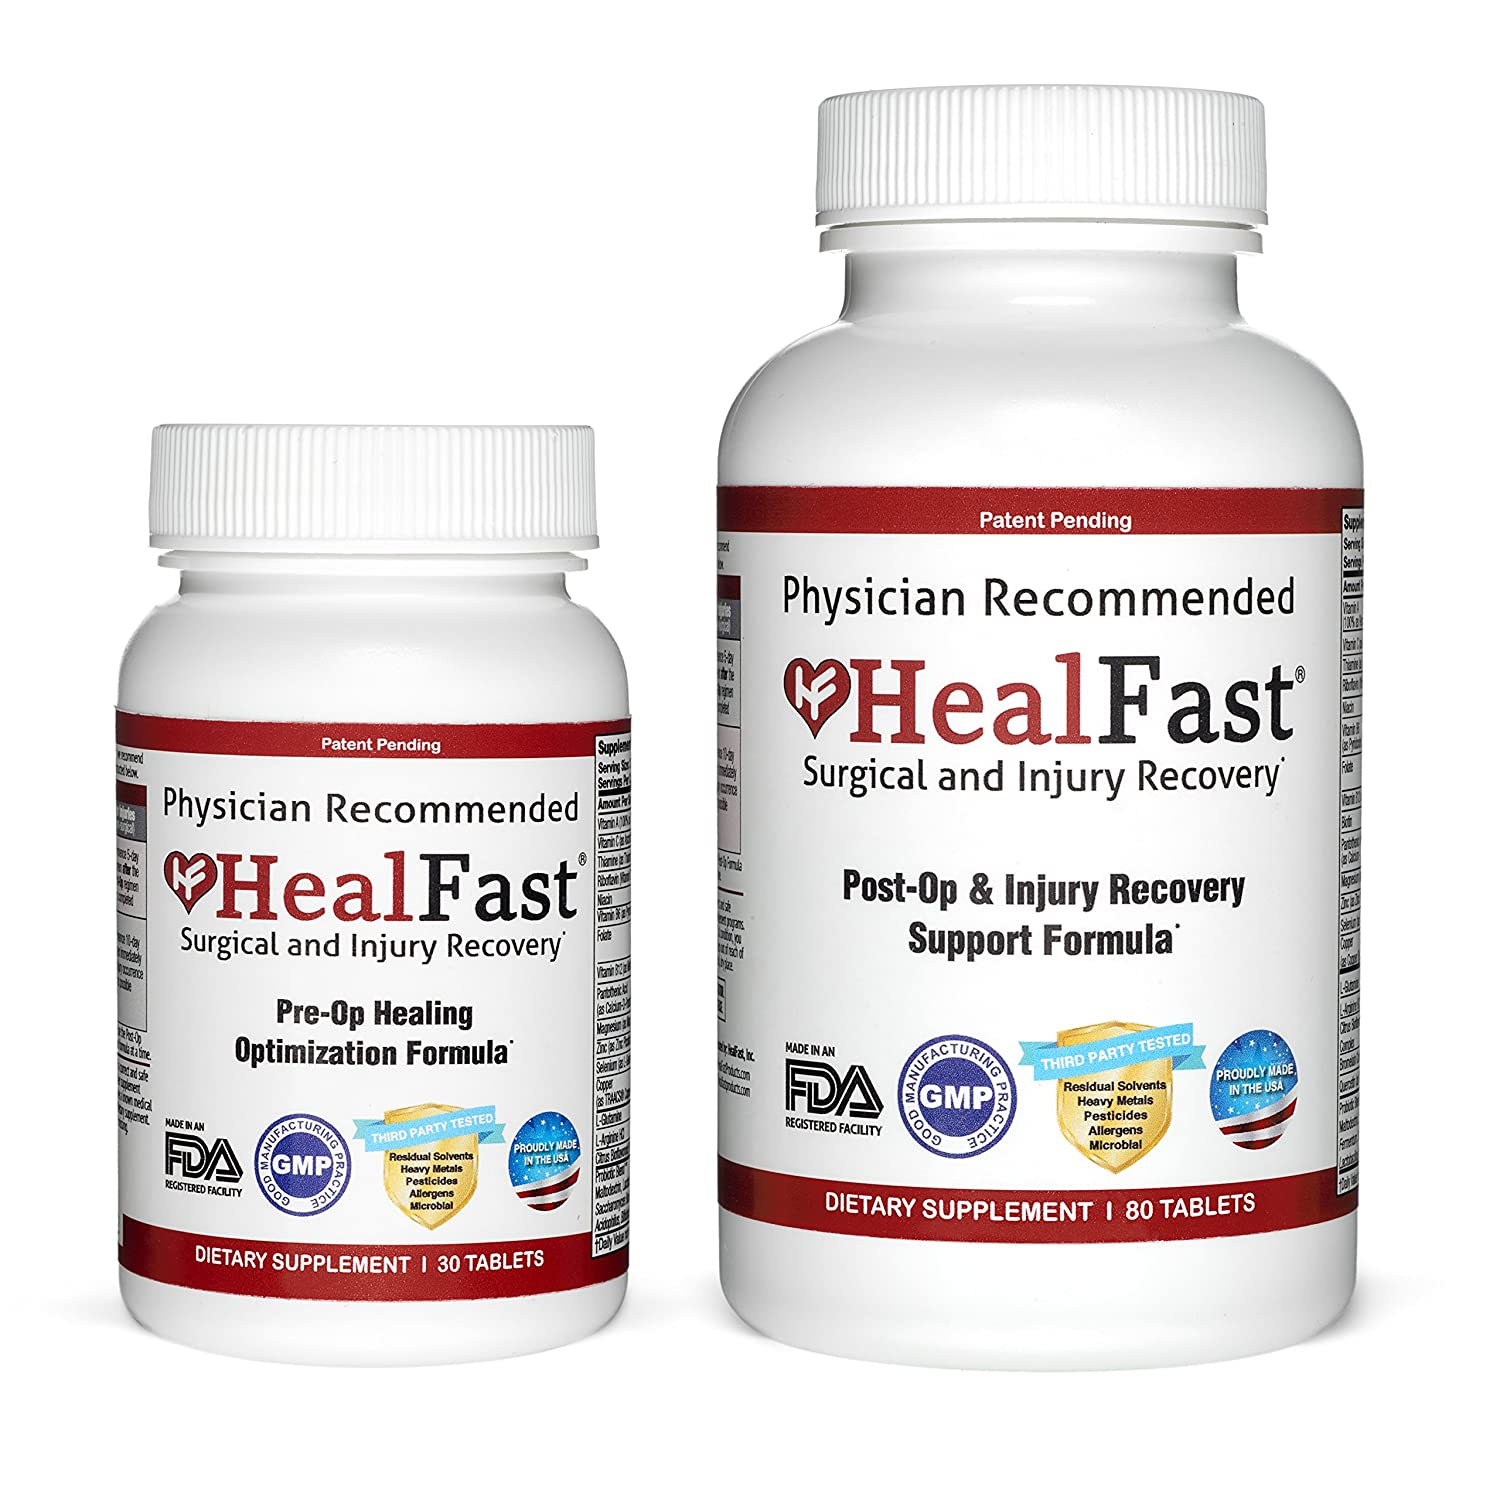 HealFast Complete Surgery & Injury Recovery Supplement